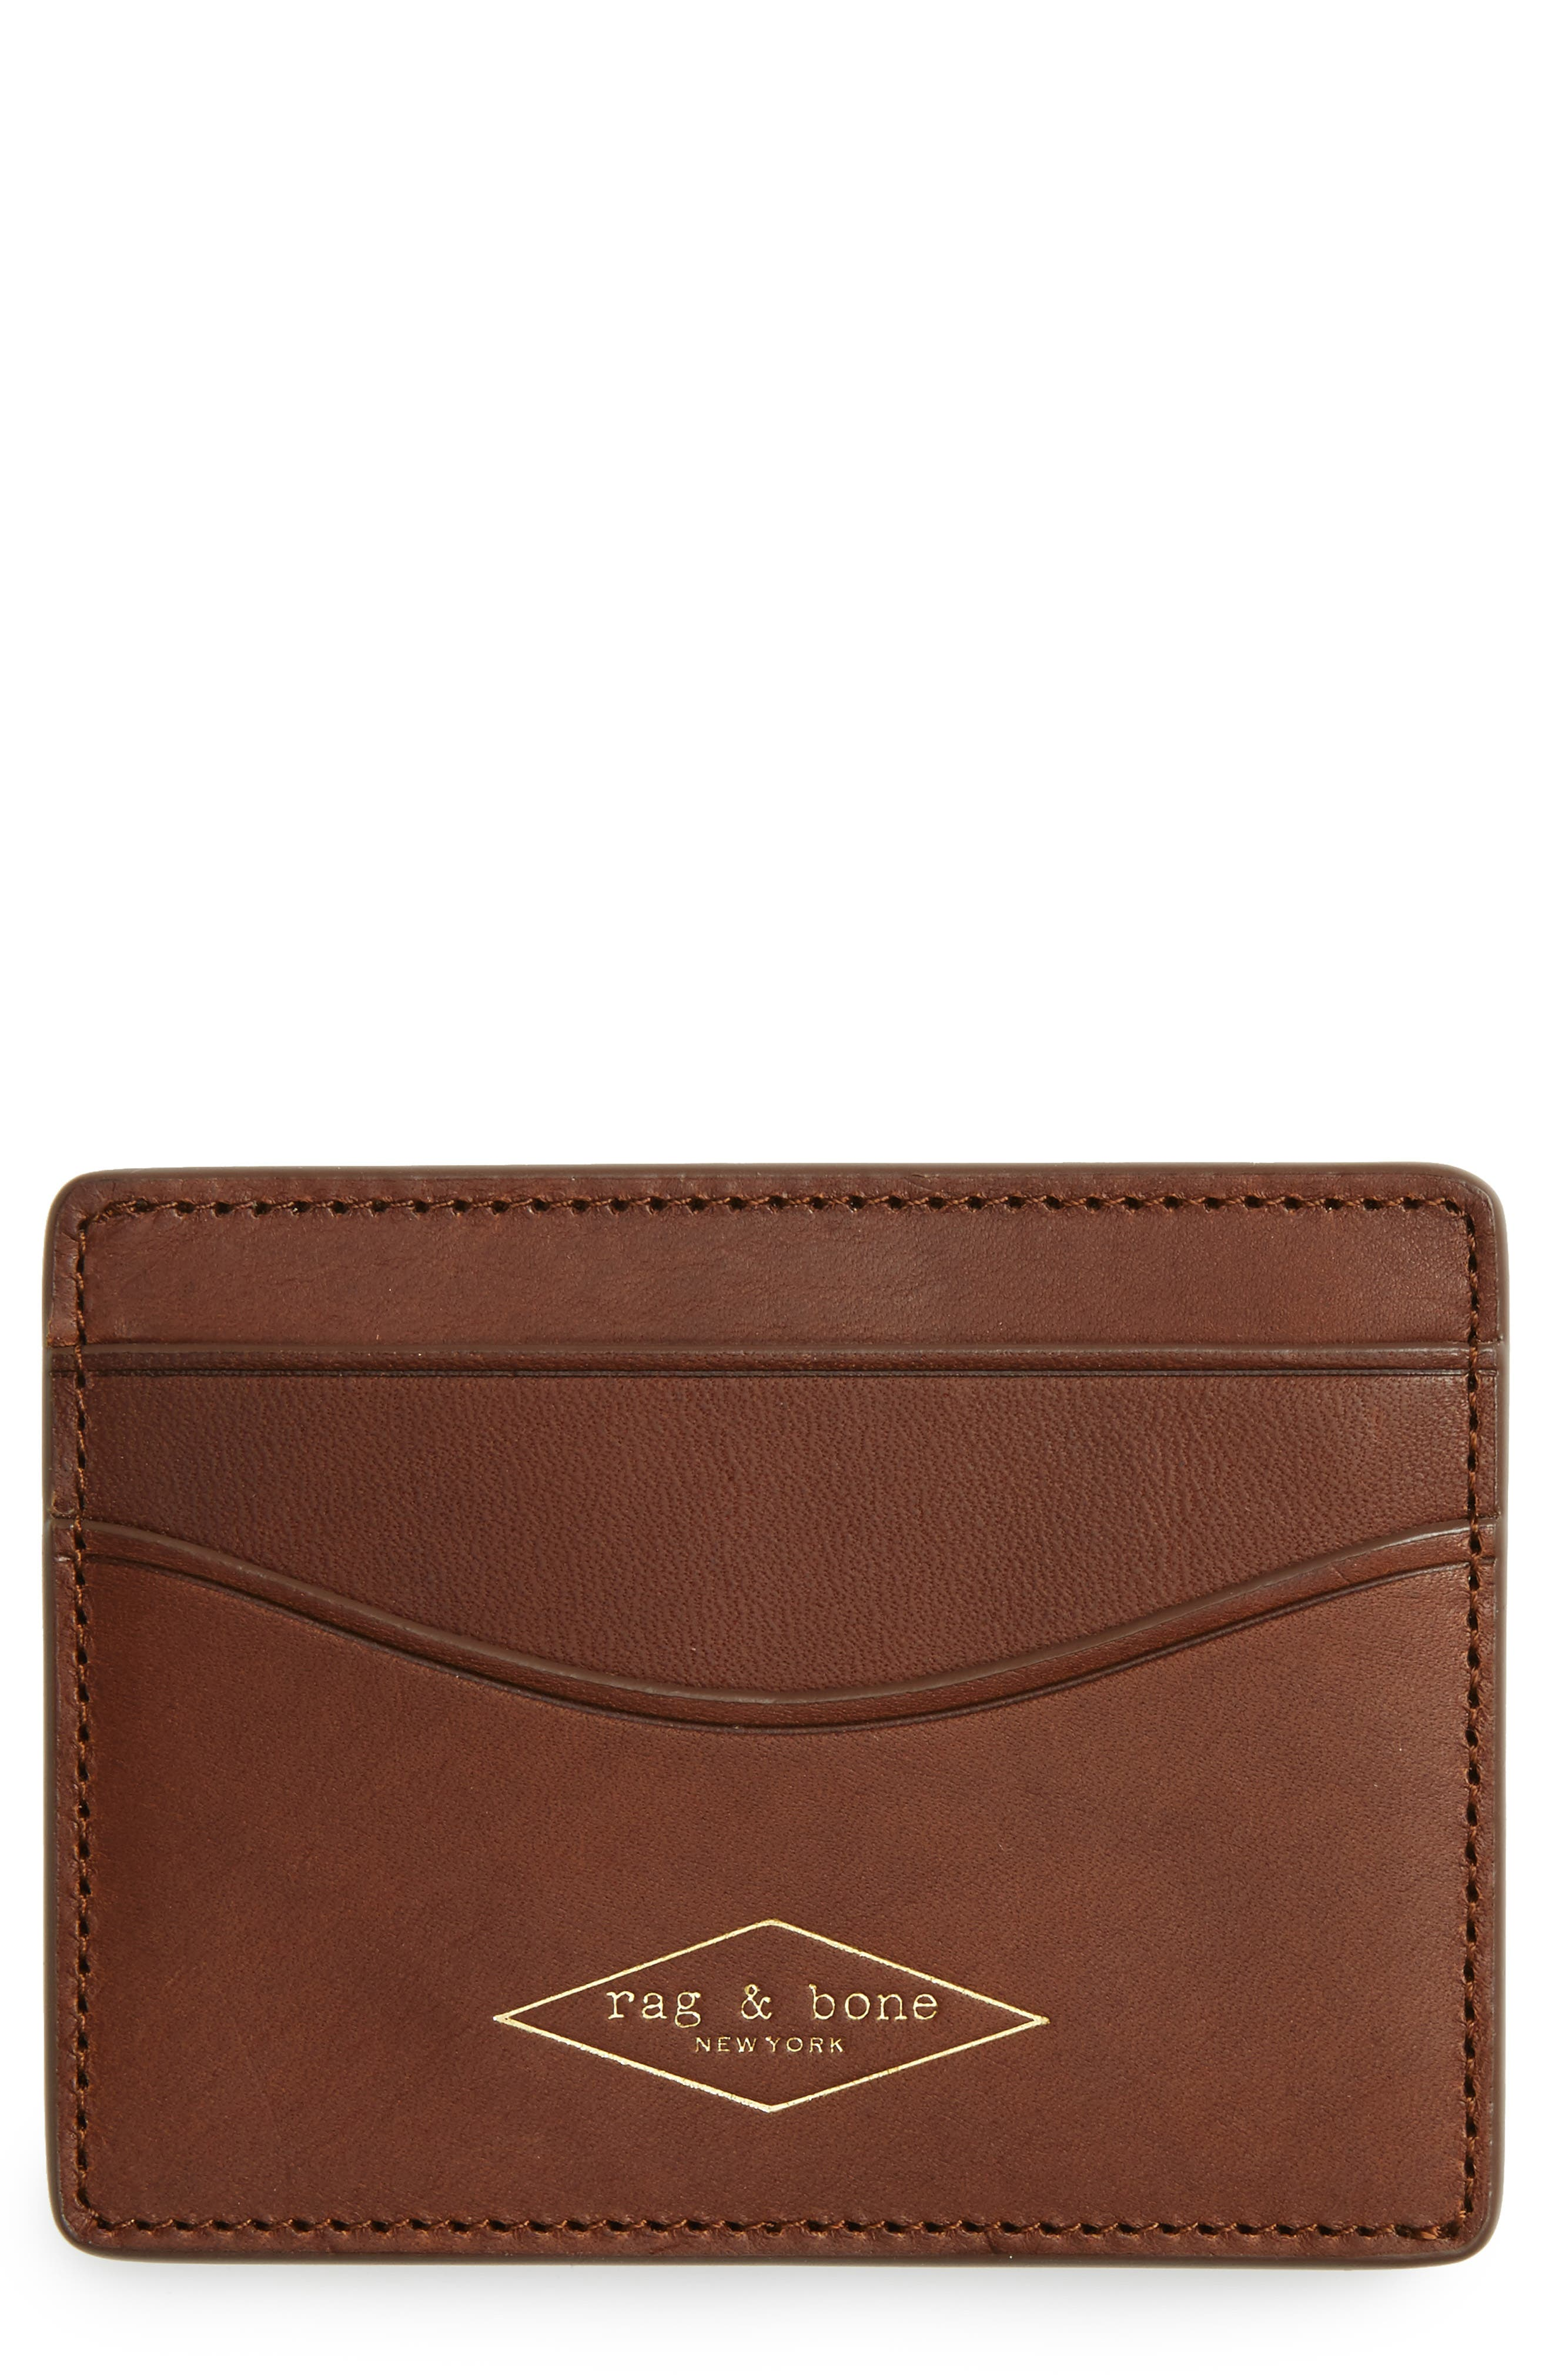 Leather Card Case,                             Main thumbnail 1, color,                             Brown